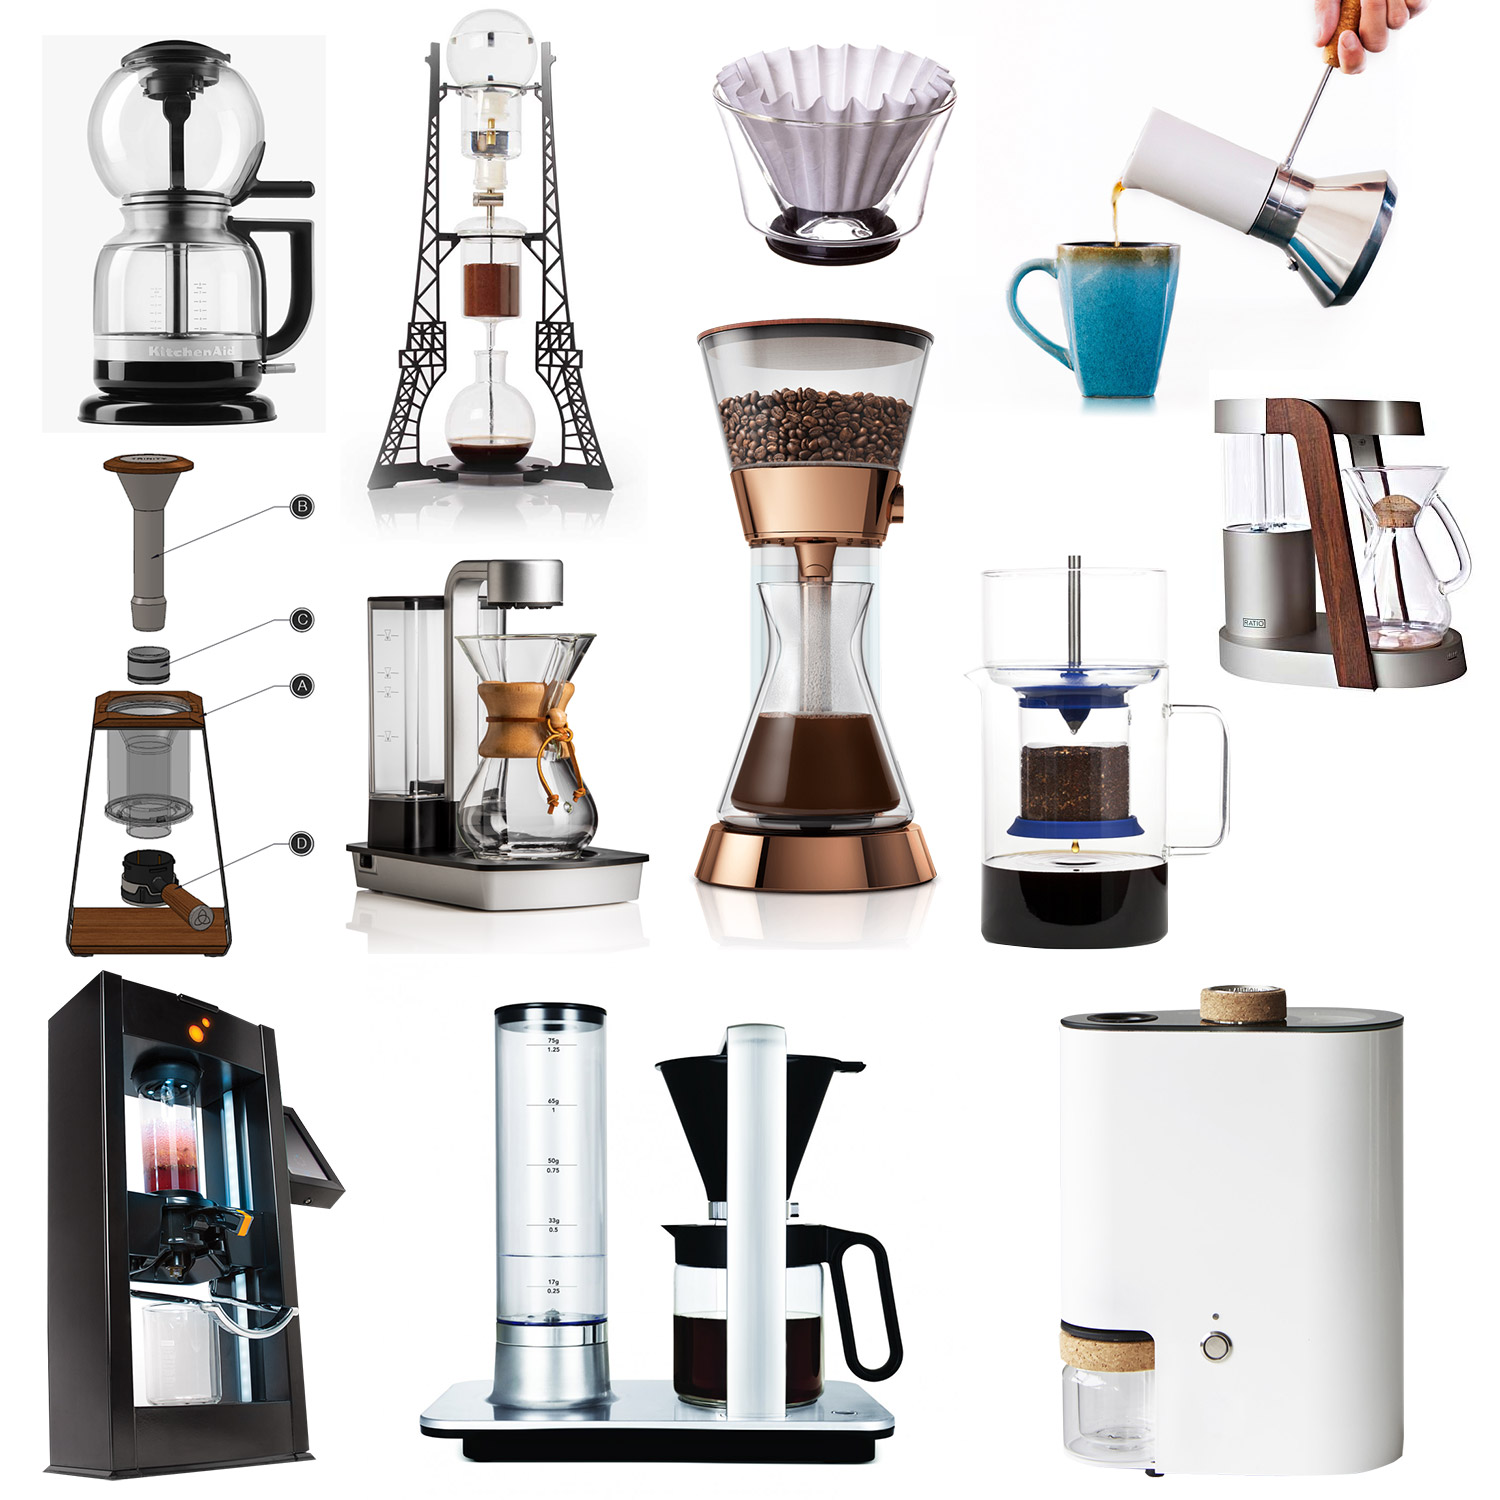 New Coffee Maker Design : 12 of the Best in Coffee Brewing Technology - Design Milk